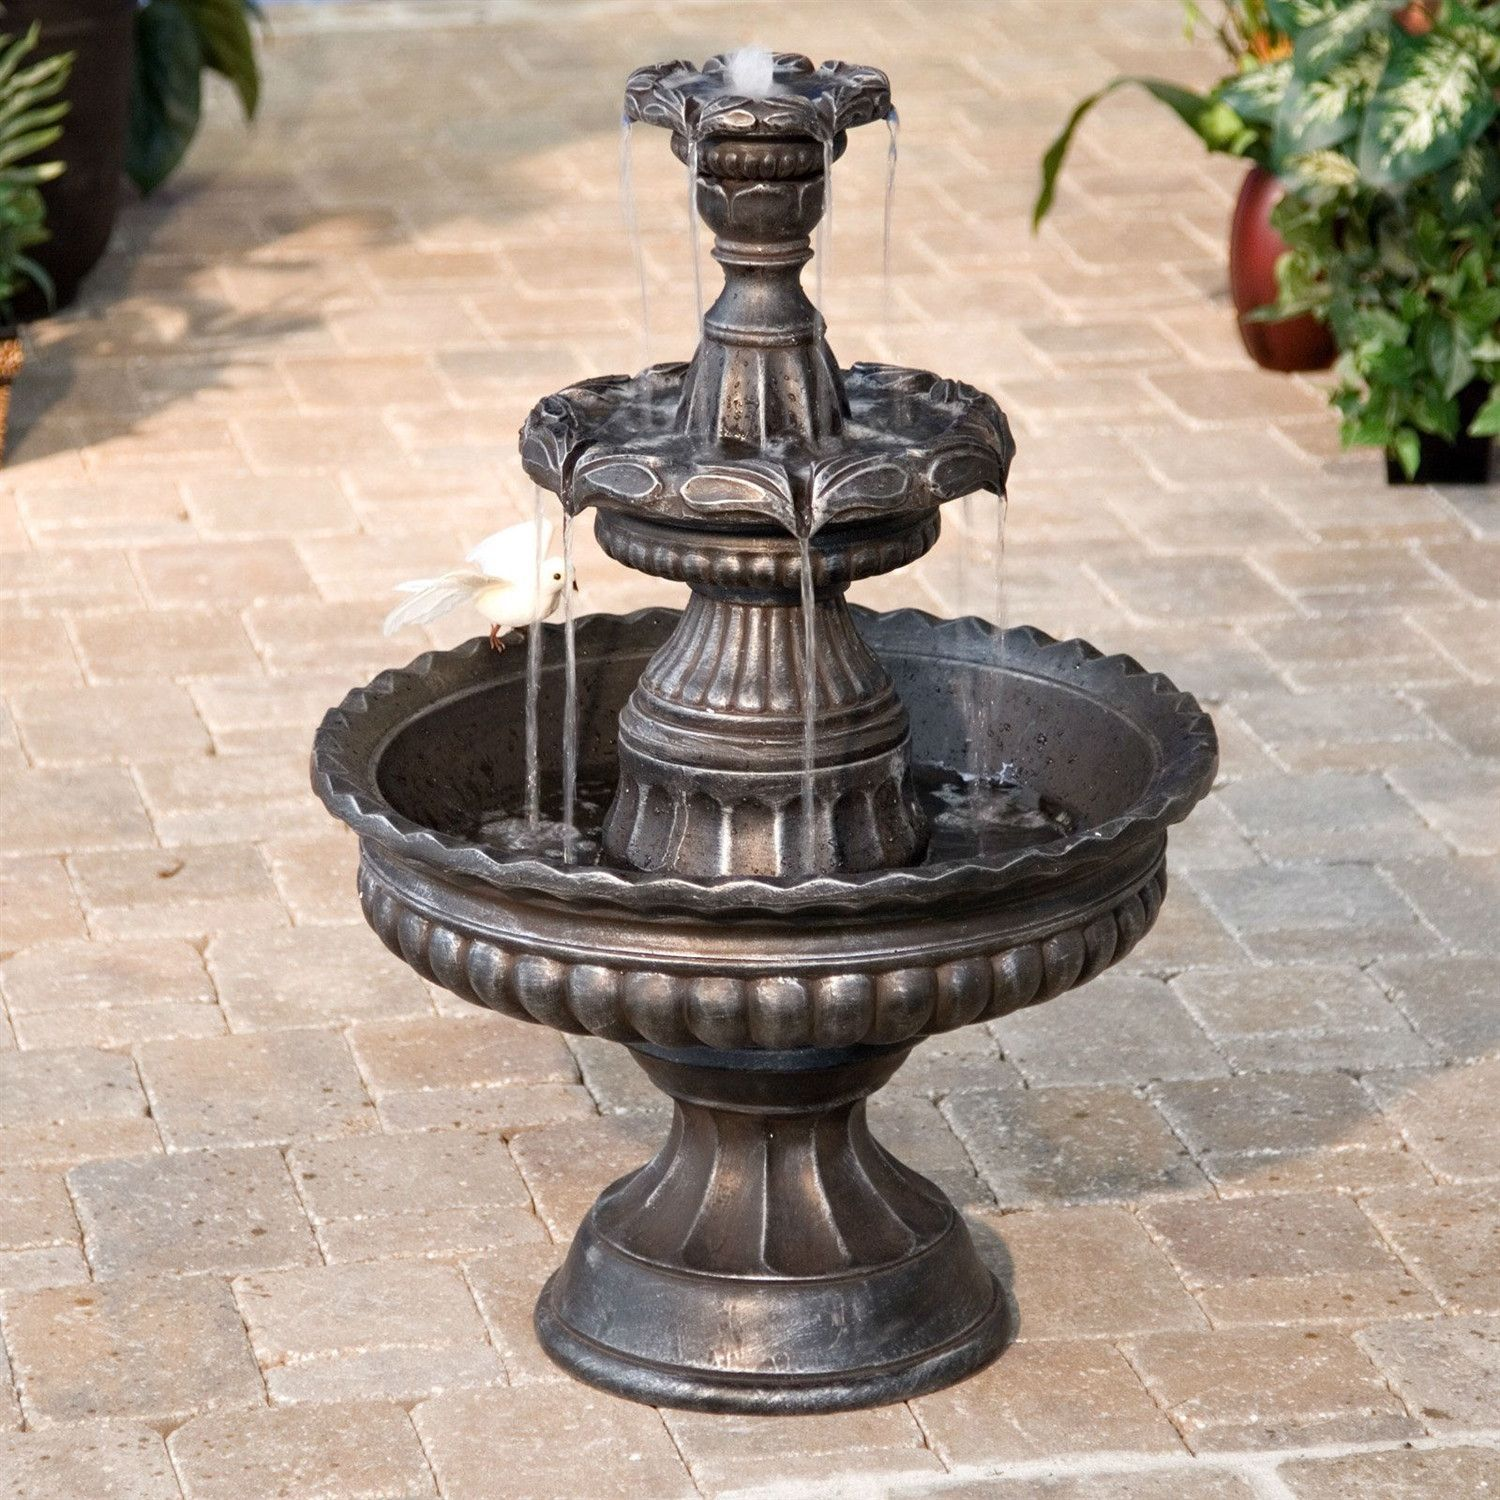 3 Tier Fountain In Outdoor Weather Resistant Resin Bronze Finish Fountains Backyard Water Fountains Outdoor Fountains Outdoor